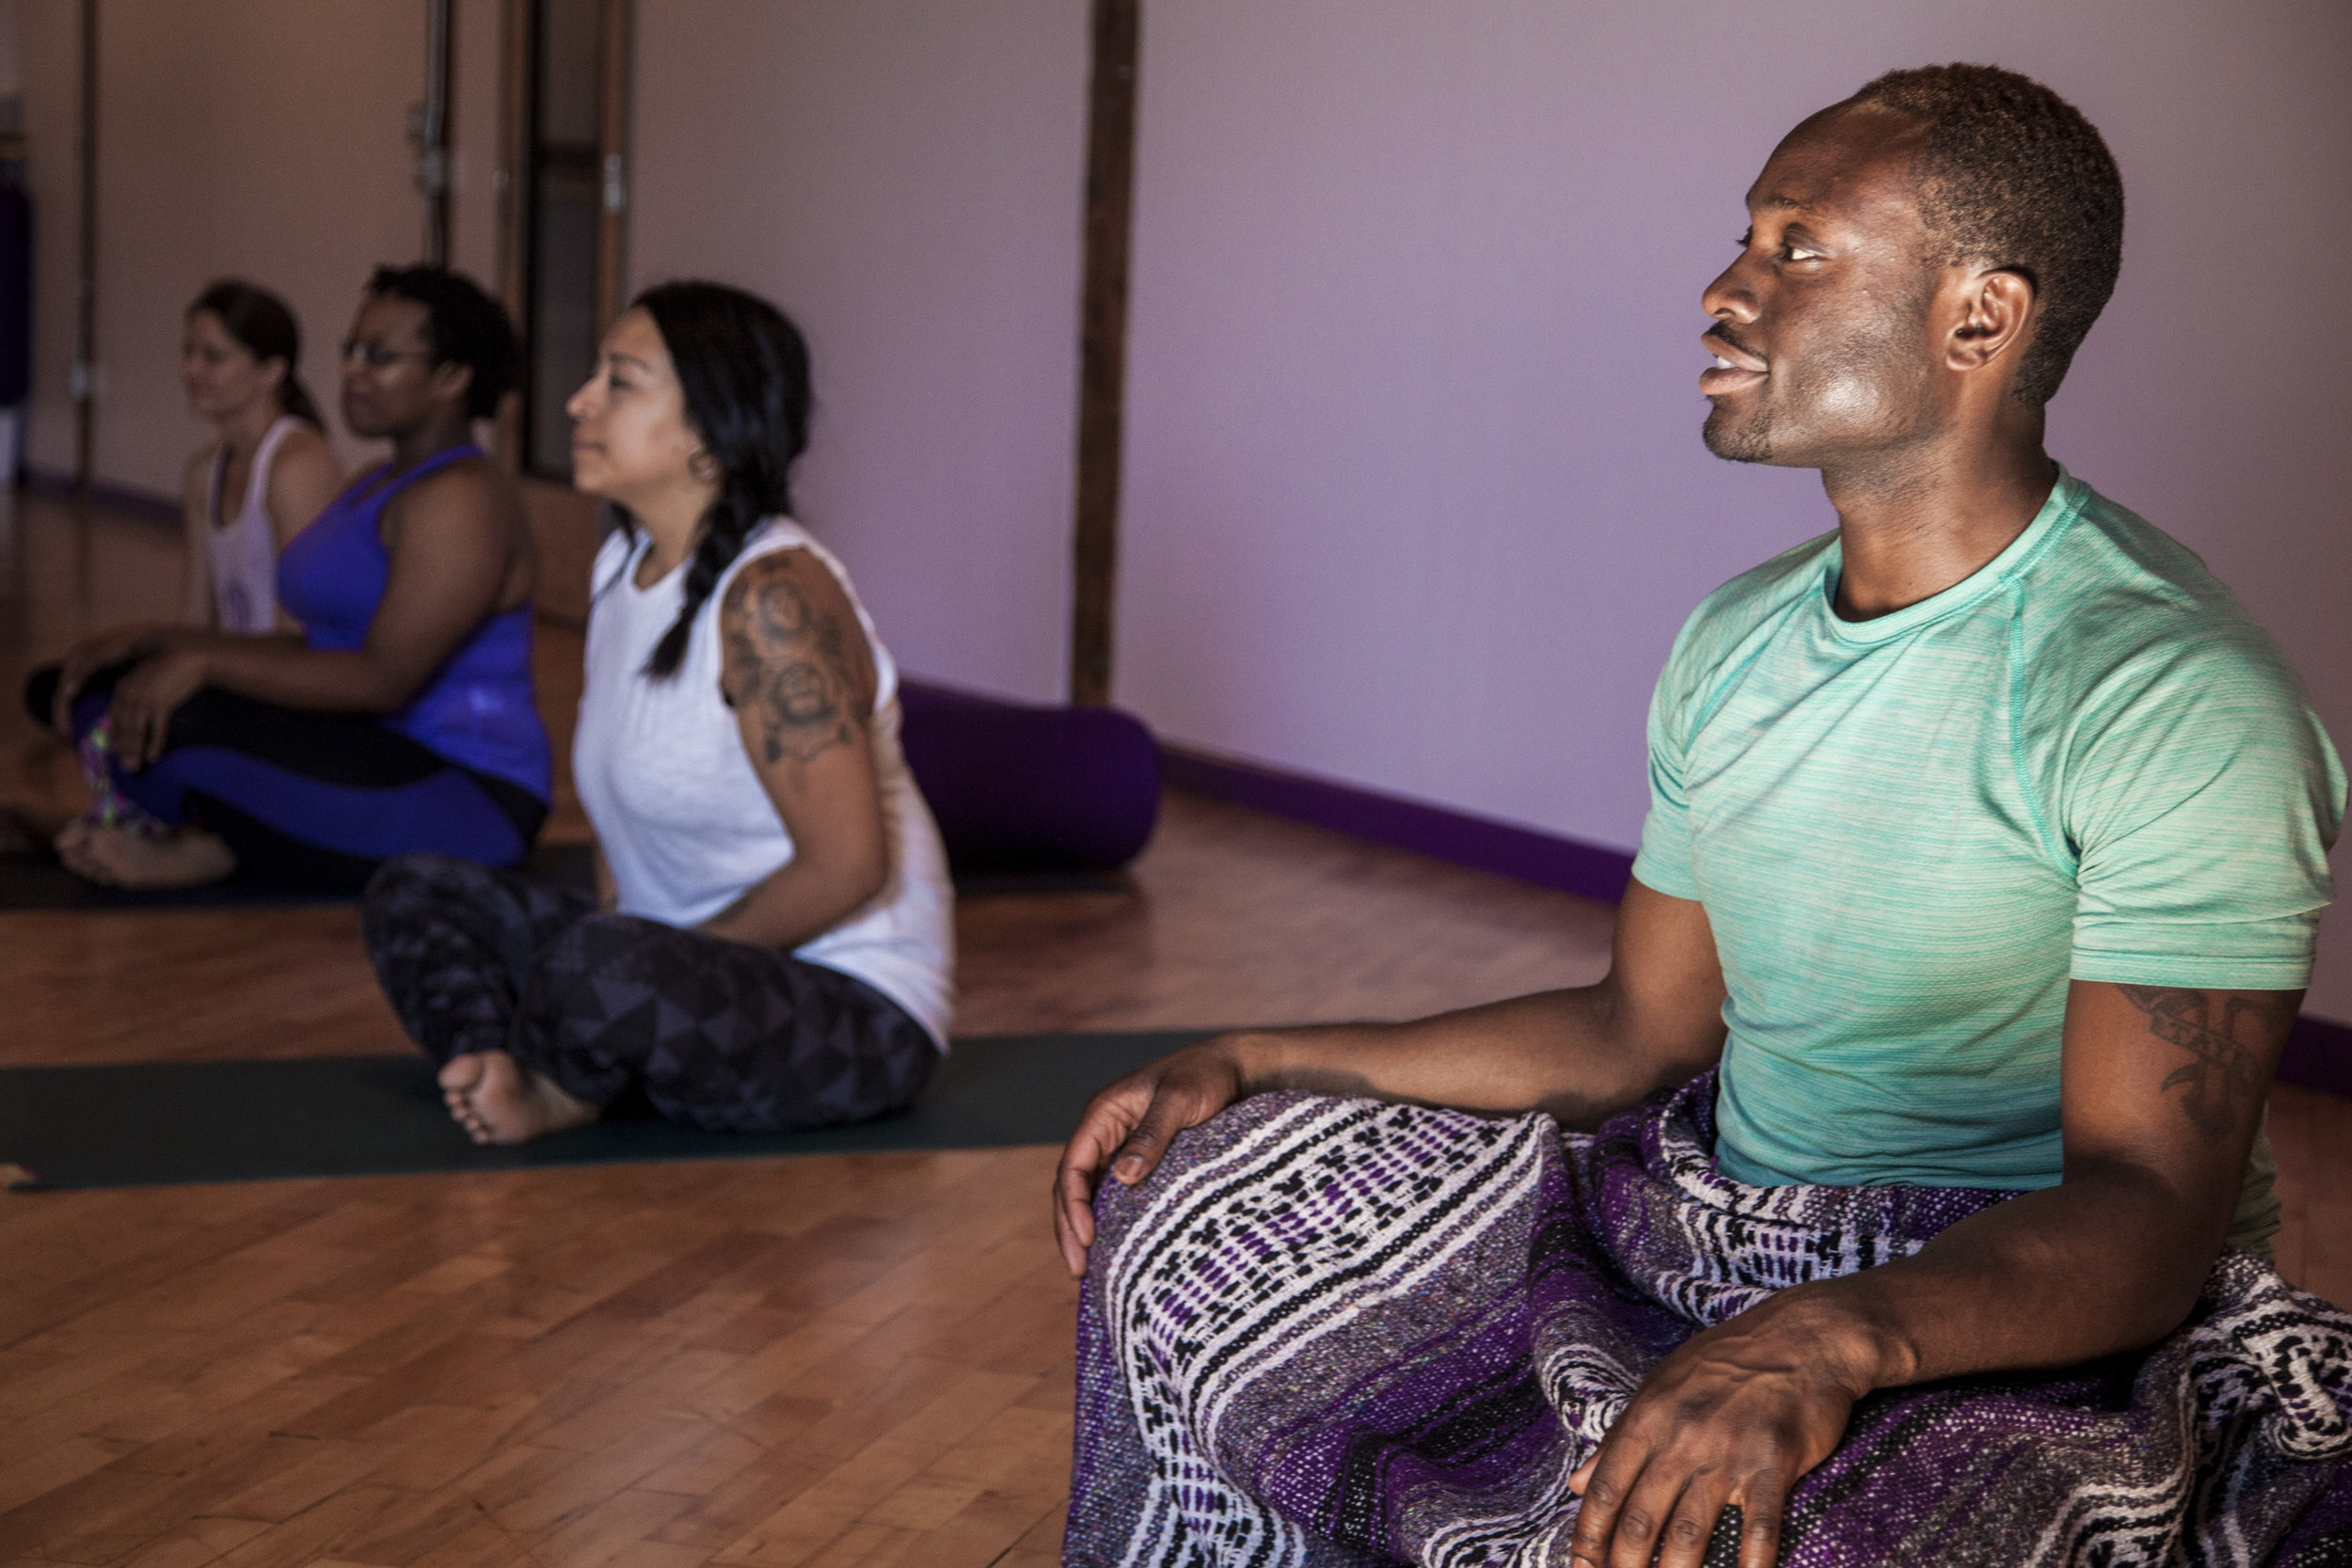 - Femi is now teaching yoga and meditation classes on the island of Martha's Vineyard for the summer of 2017. Sign up or find and event near you.